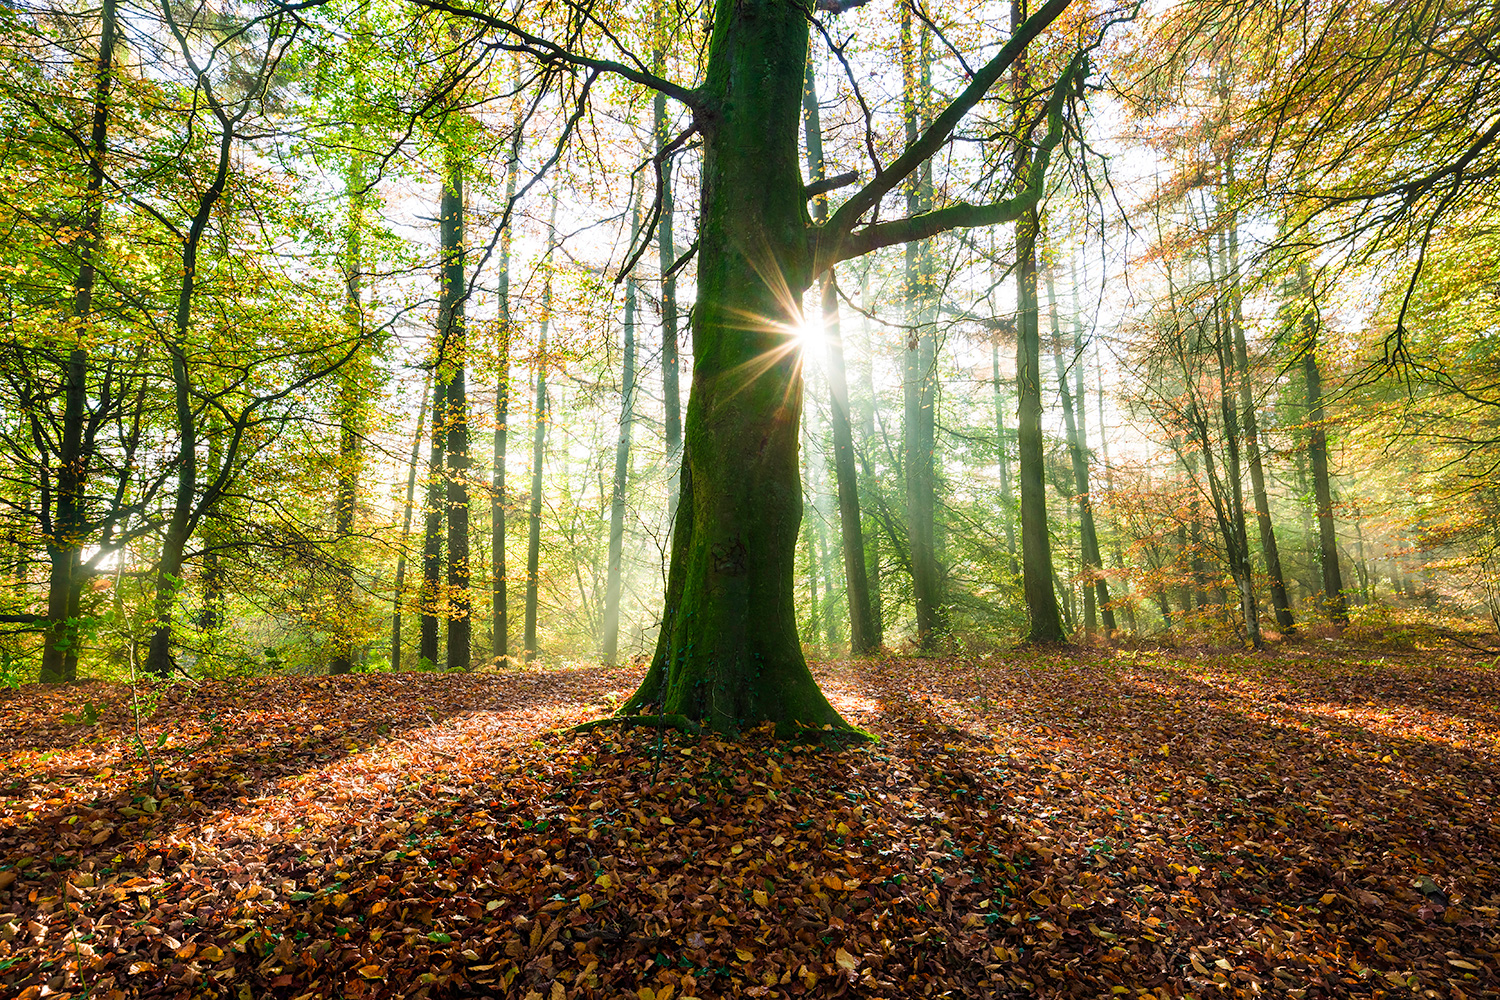 Sunlight peeping through tree trunks and across leaf covered forest floor